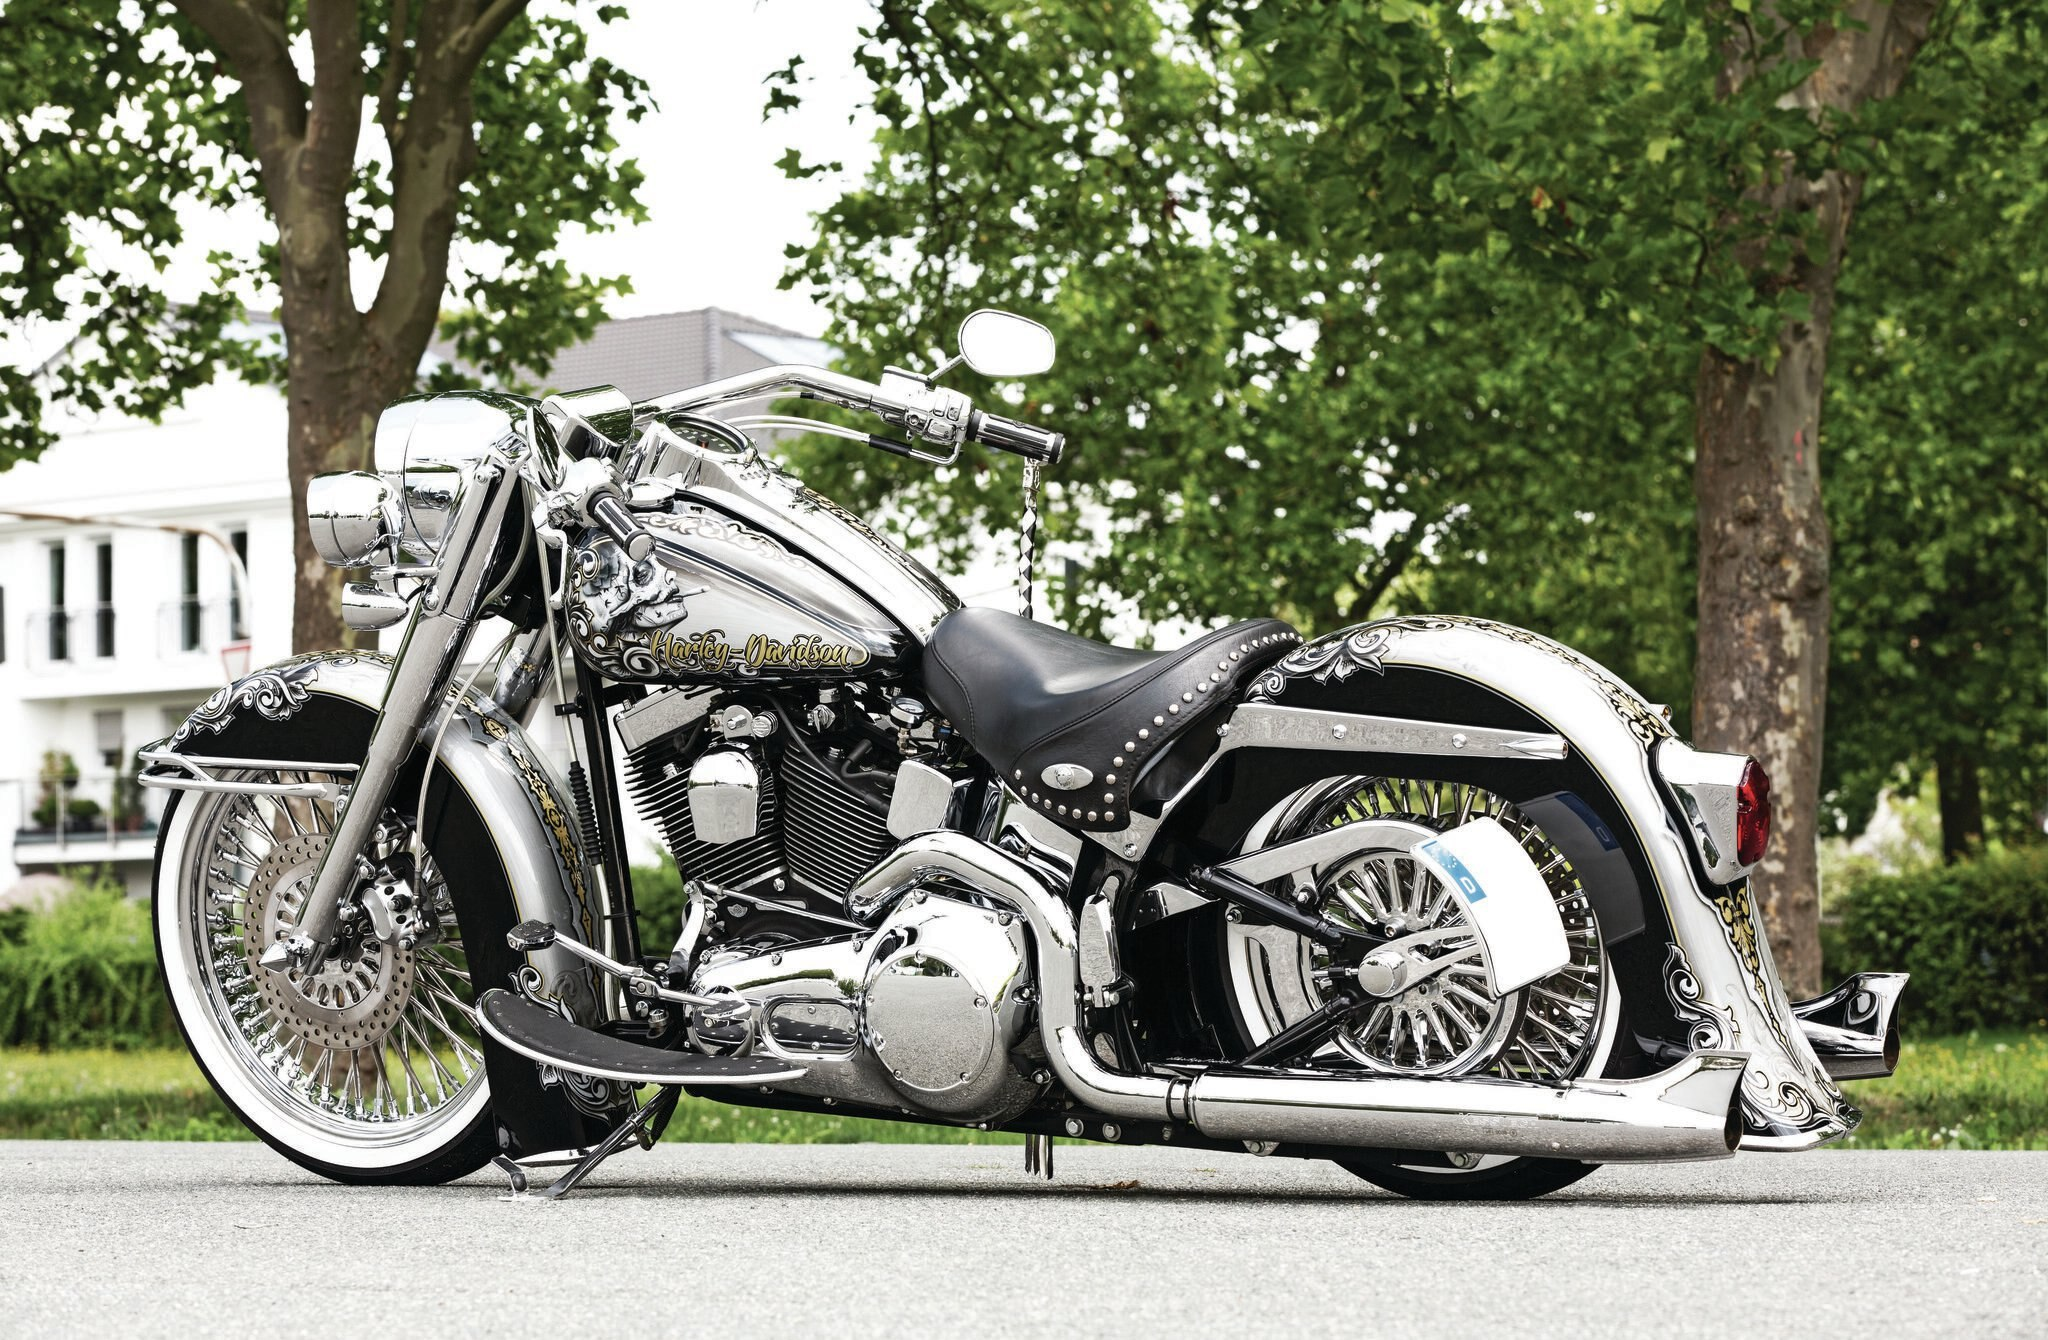 2003 harley davidson softail heritage classic anniversary side view 041?resize\\\\\\\=665%2C435 2006 harley softail wiring diagram gandul 45 77 79 119 2006 harley davidson wiring diagrams at bakdesigns.co